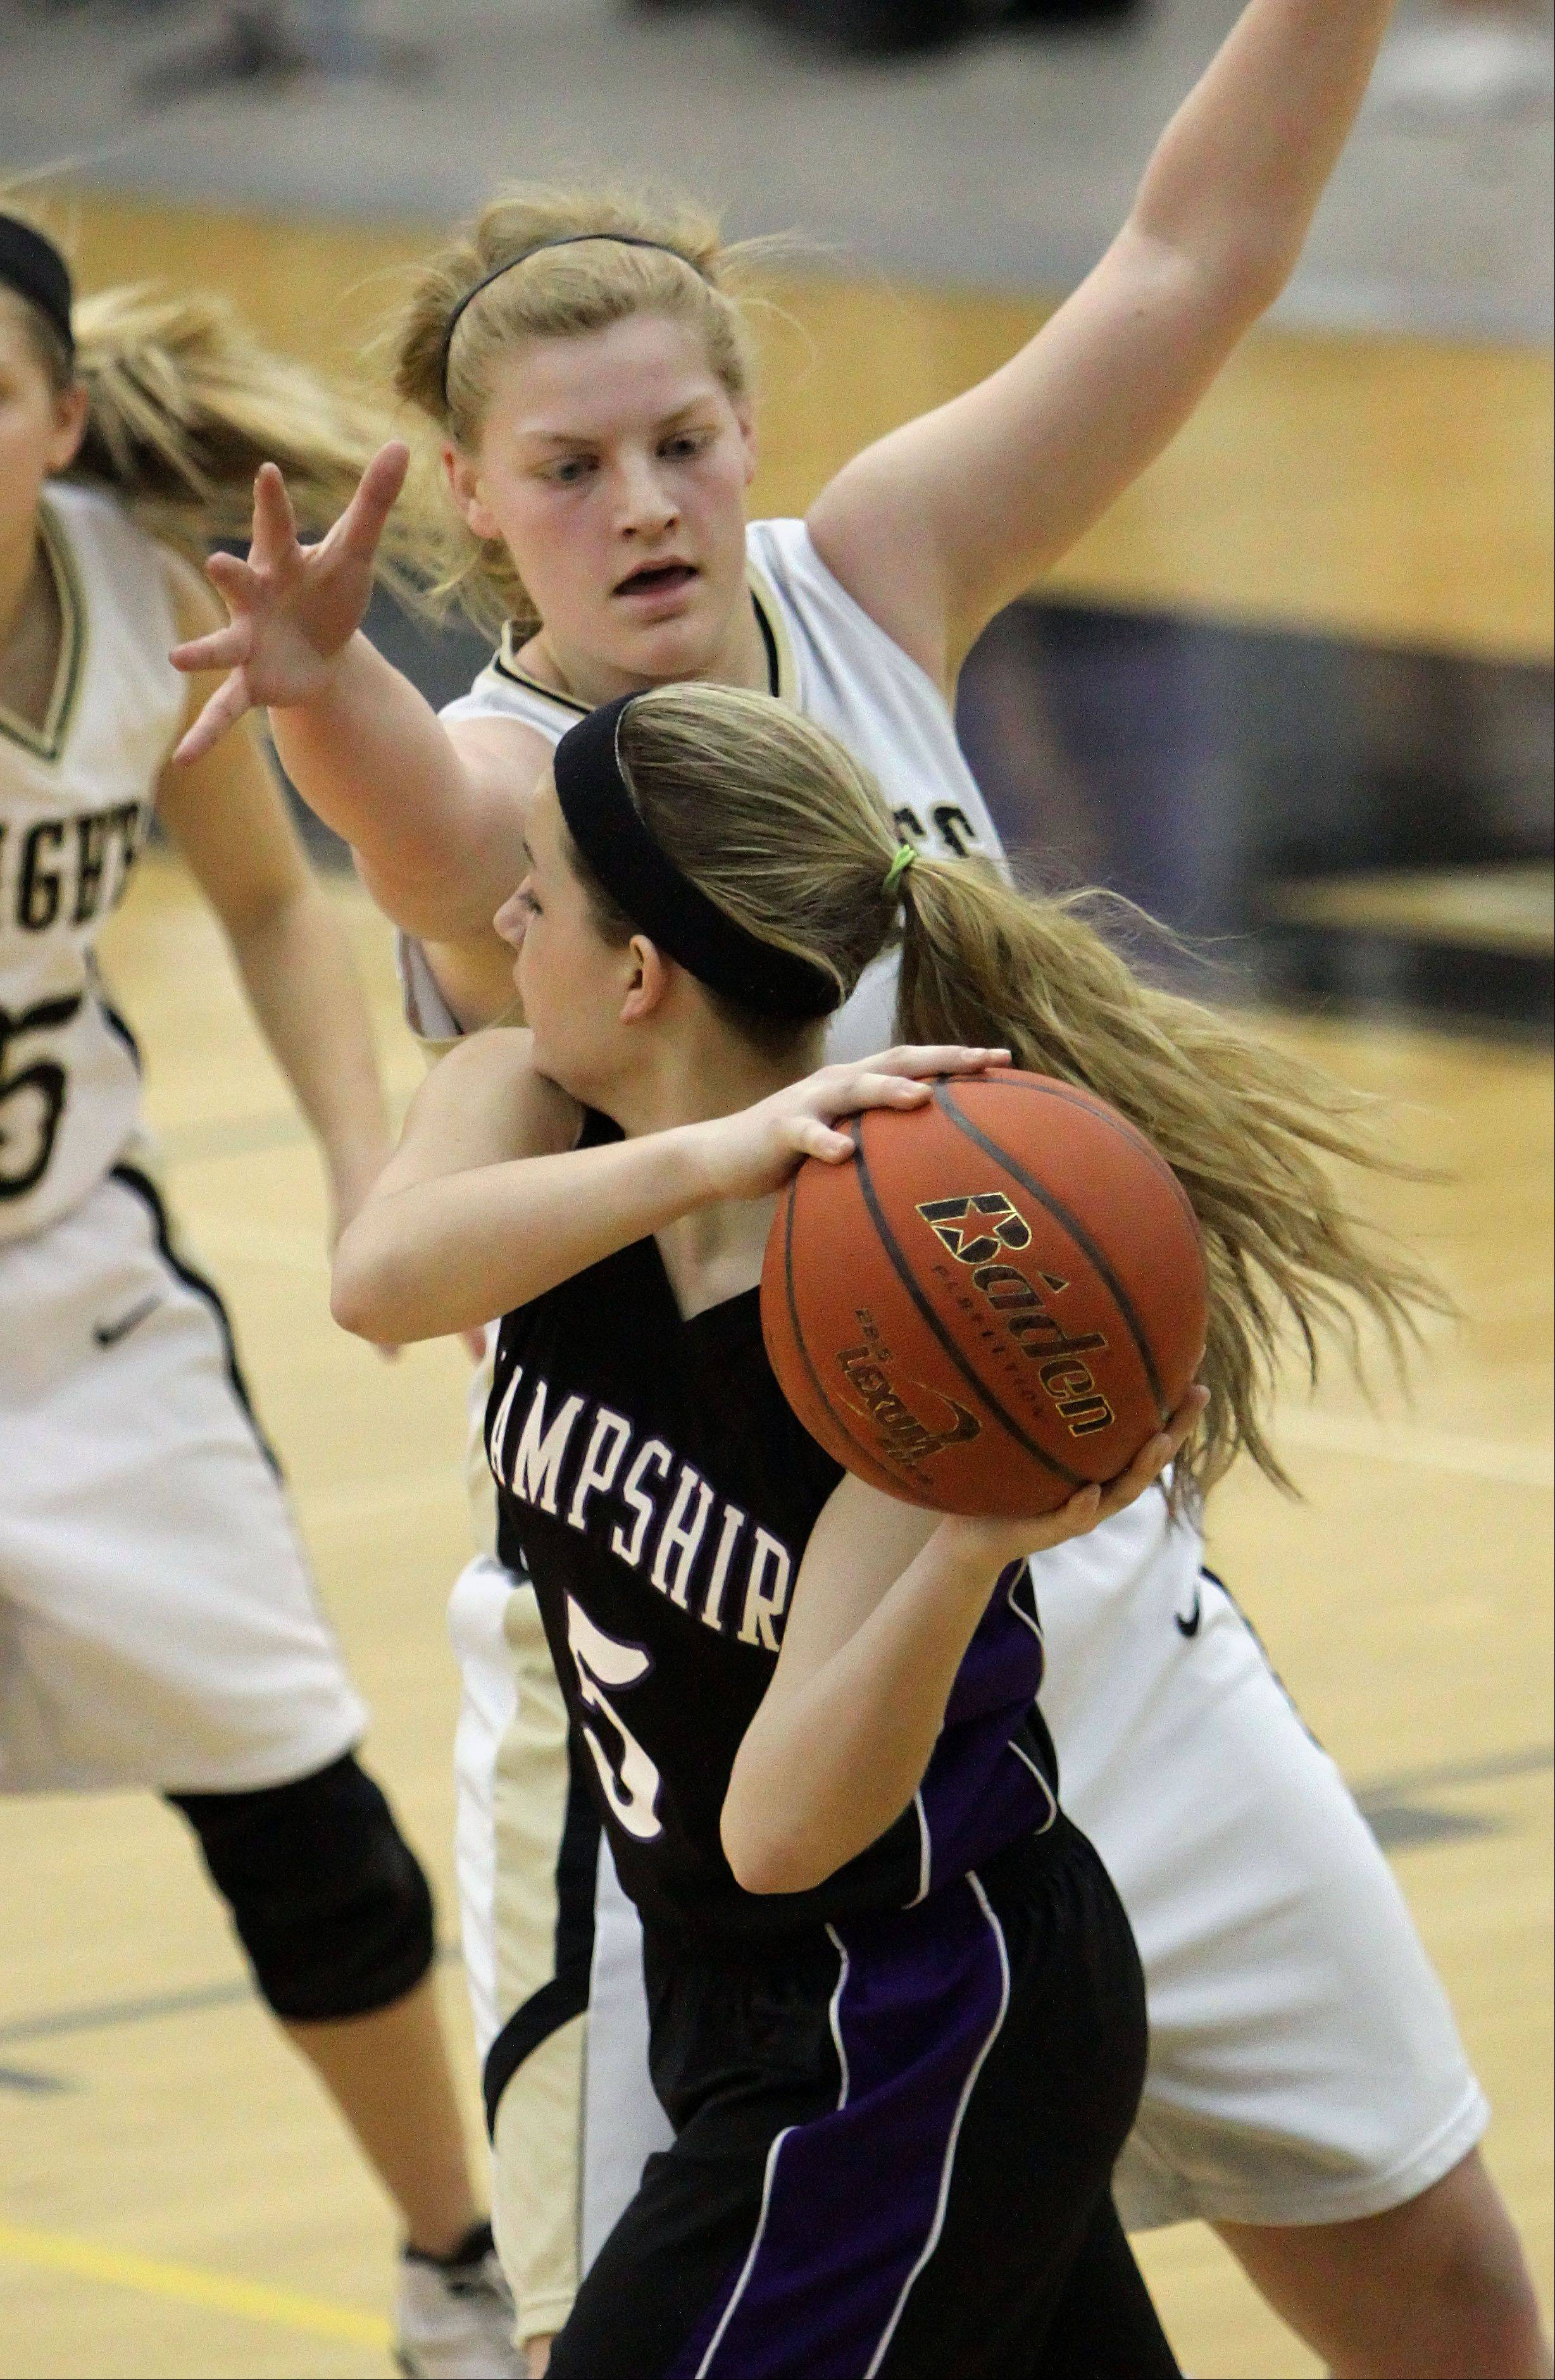 Grayslake North's Joanna Guhl guards Hampshire's Sara Finn on Wednesday night at Grayslake North.